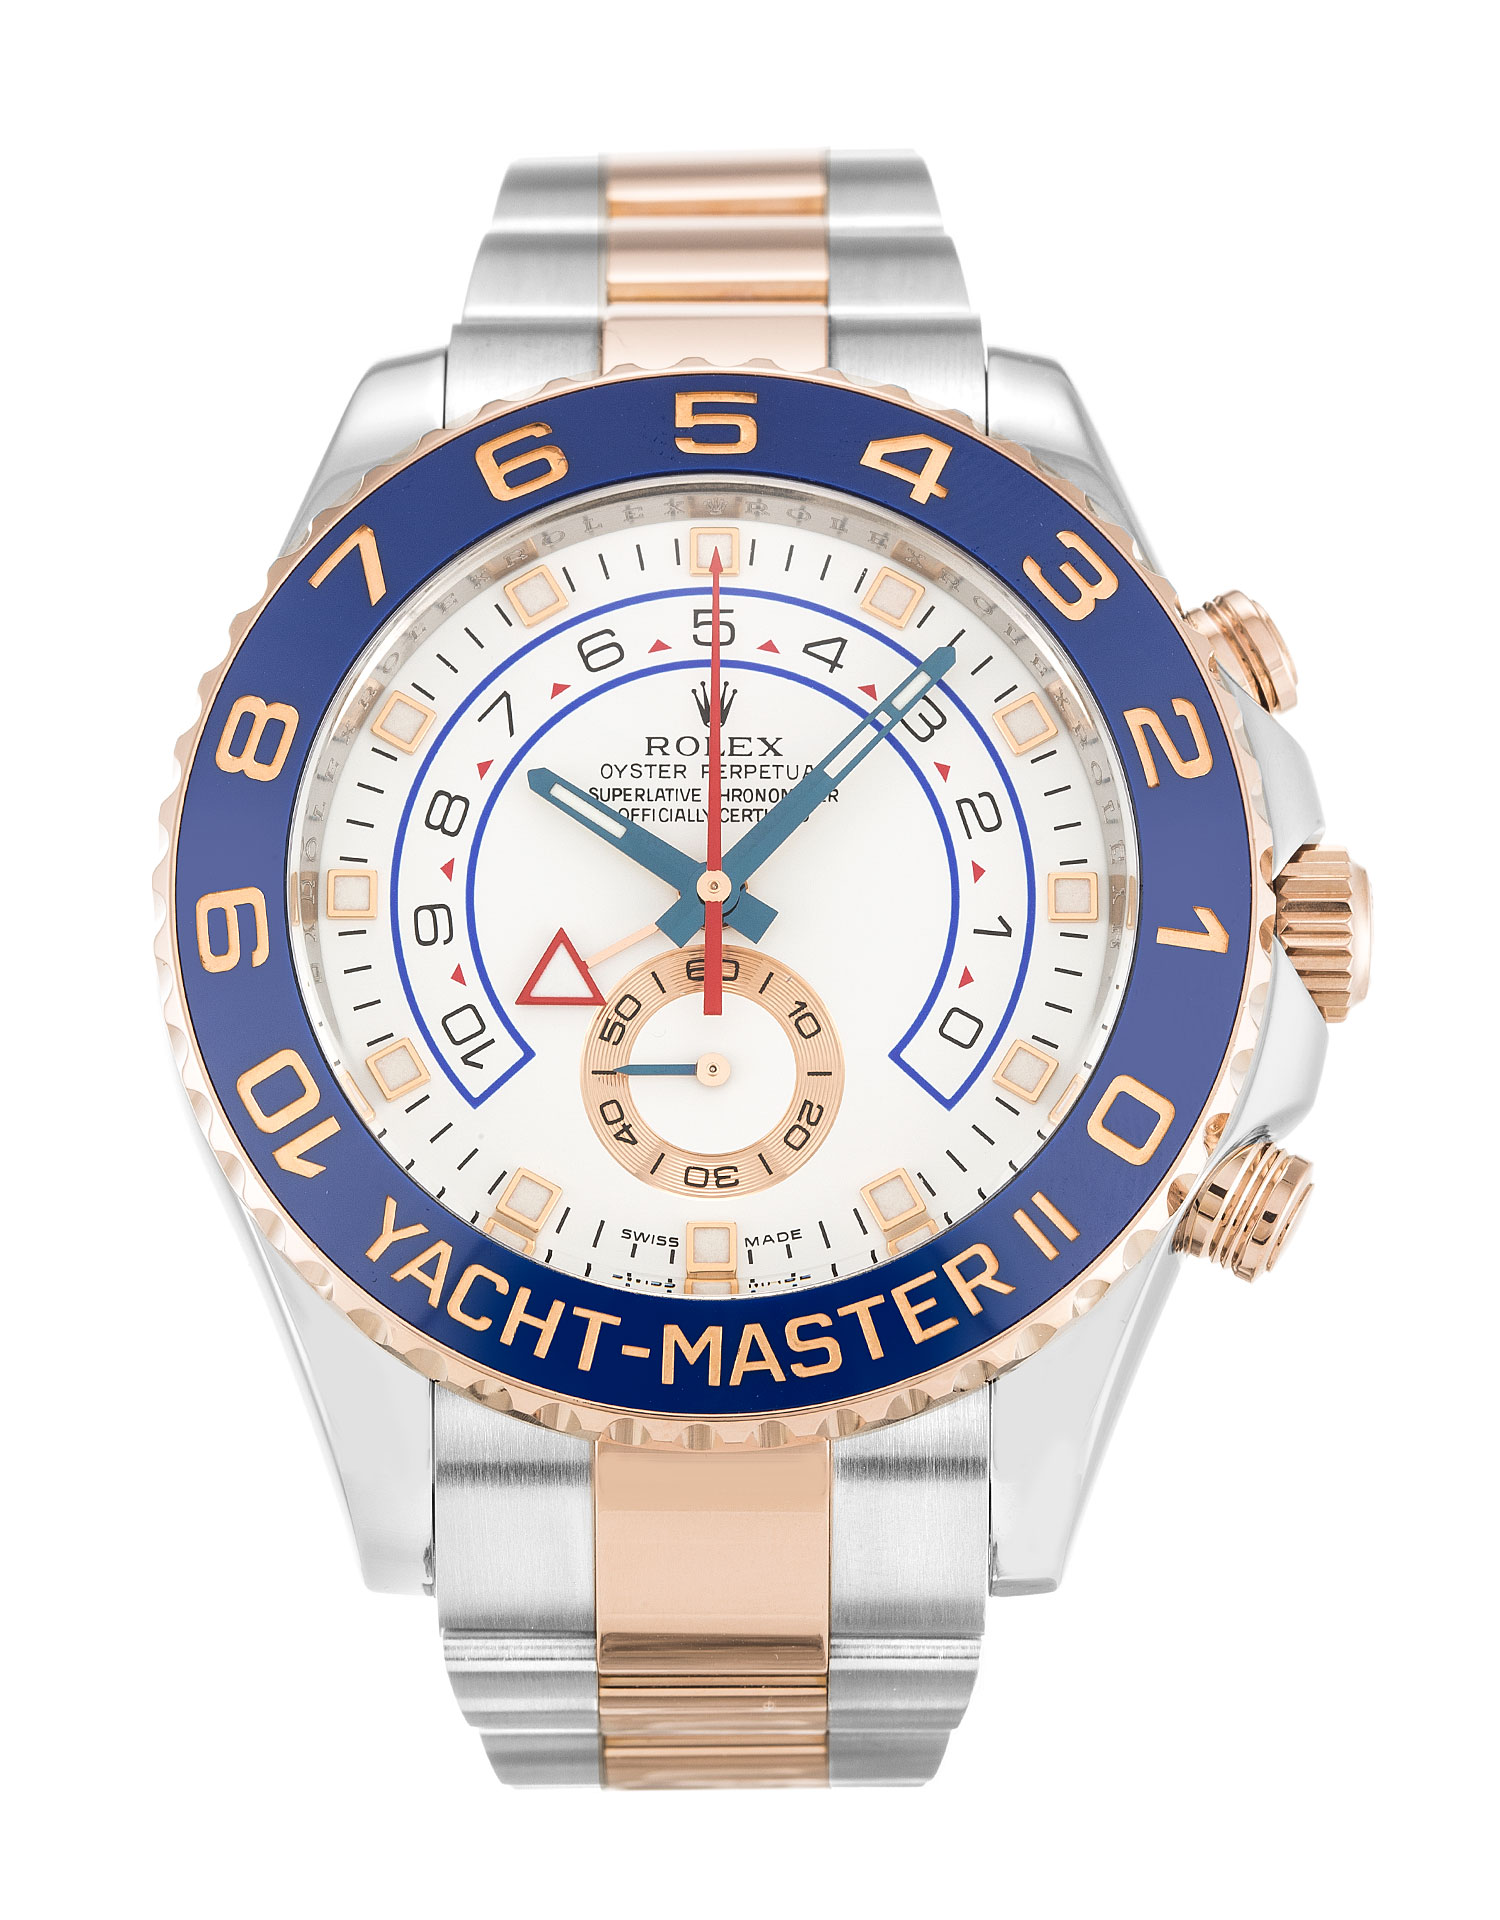 Rolex Yacht-master Ii 116681 Mens 44 Mm Steel & Rose Gold Case Automatic Movement – iapac.to